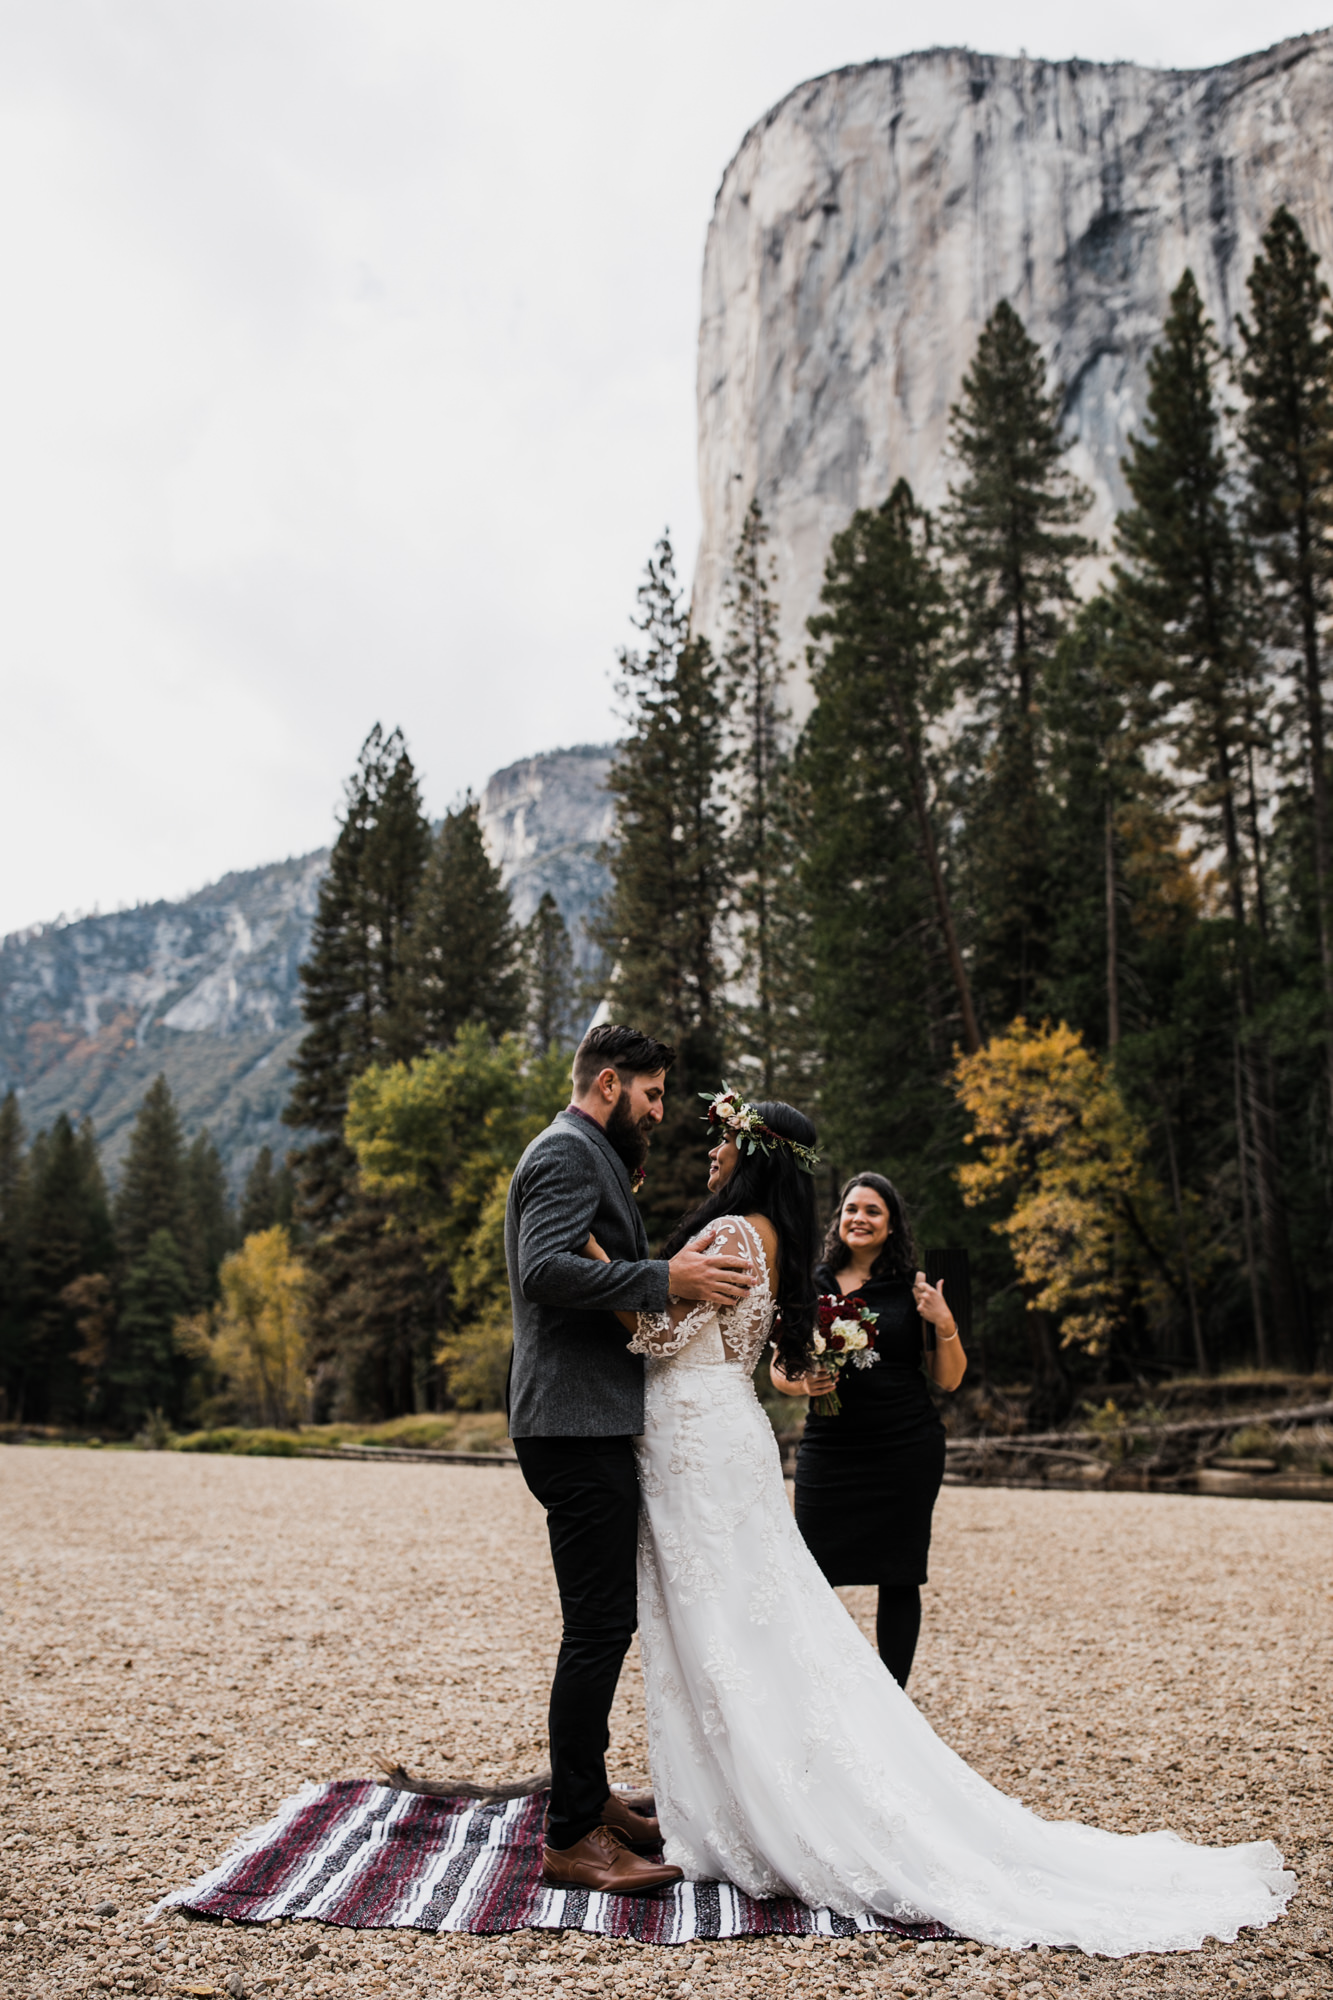 chris + jen's intimate yosemite wedding | yosemite adventure wedding photographer | the hearnes adventure photography | www.thehearnes.com